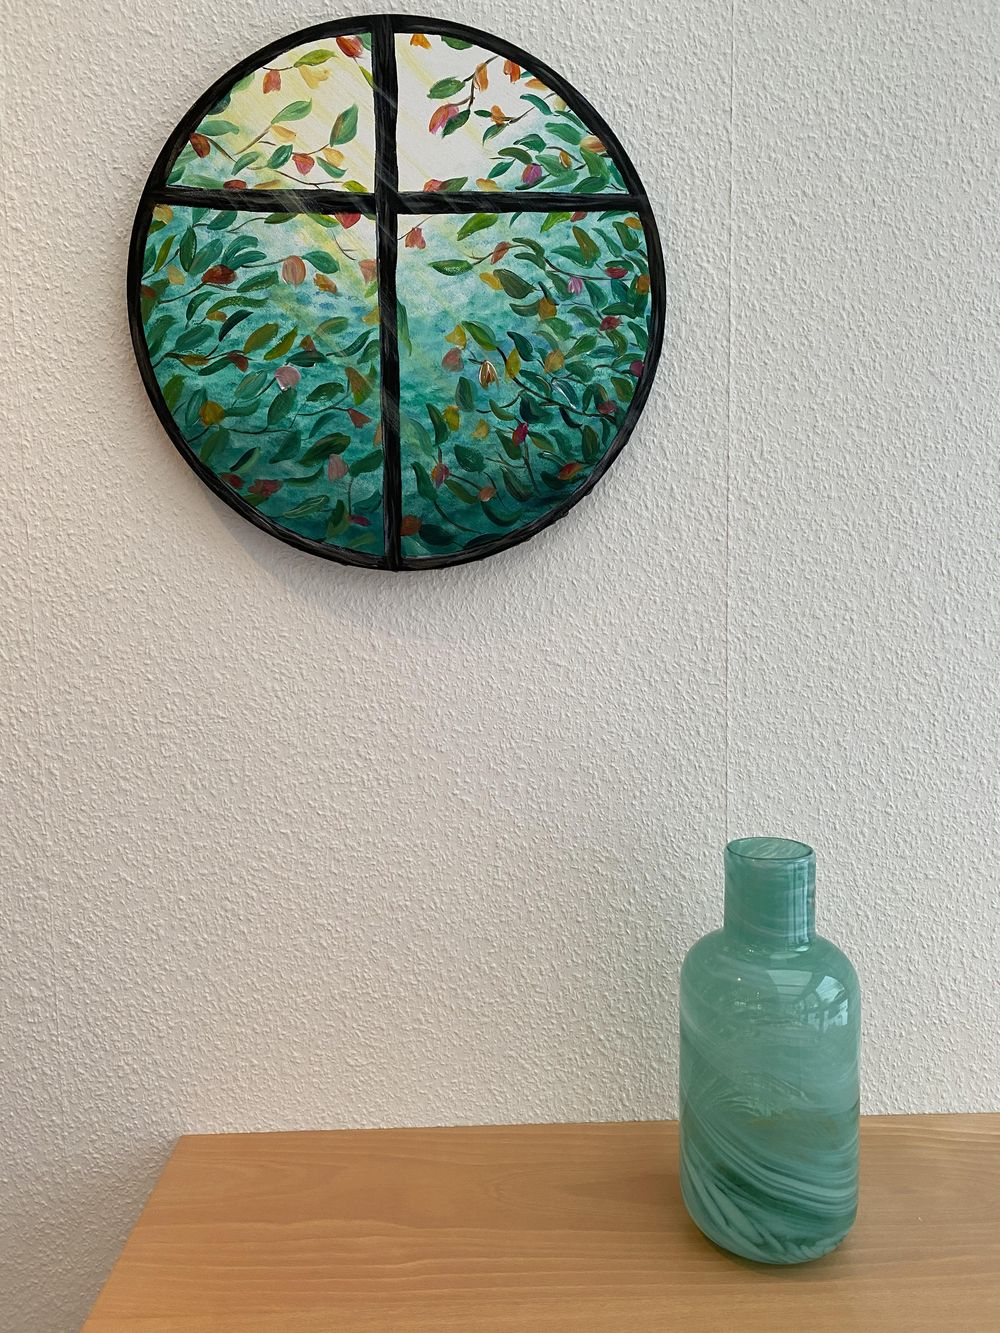 Round window - image 1 - student project